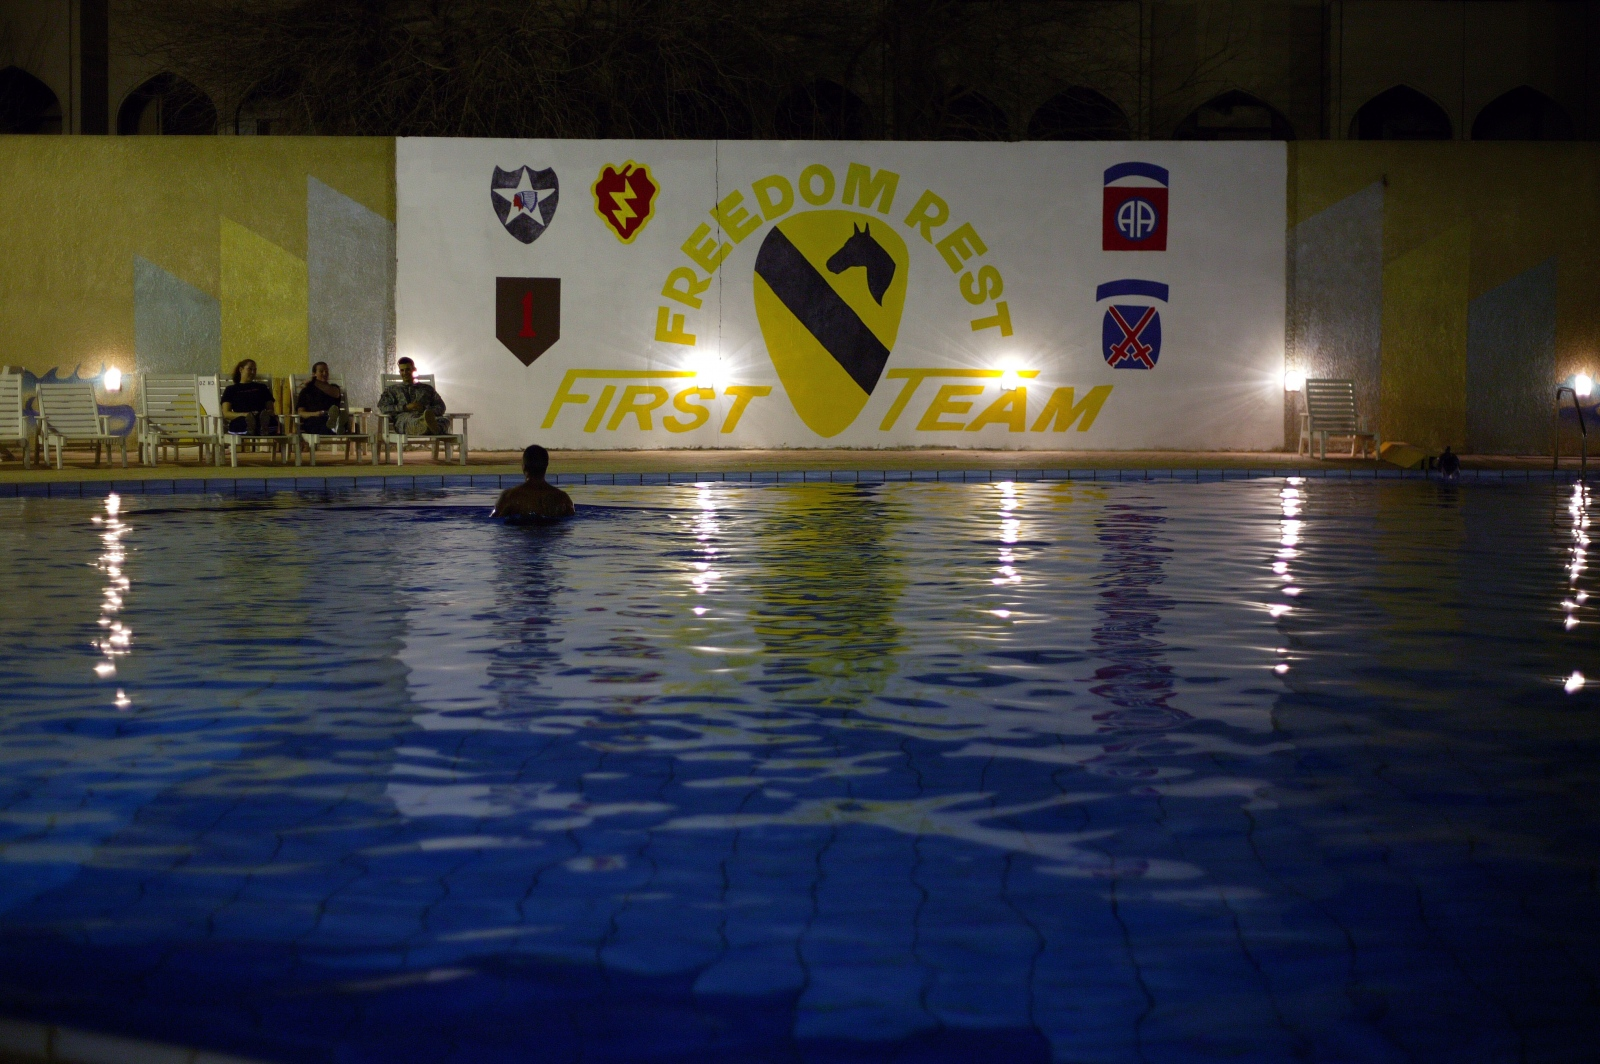 A U.S. soldier swims in a pool on the grounds of the former Iraqi Republican Guard Officers Club